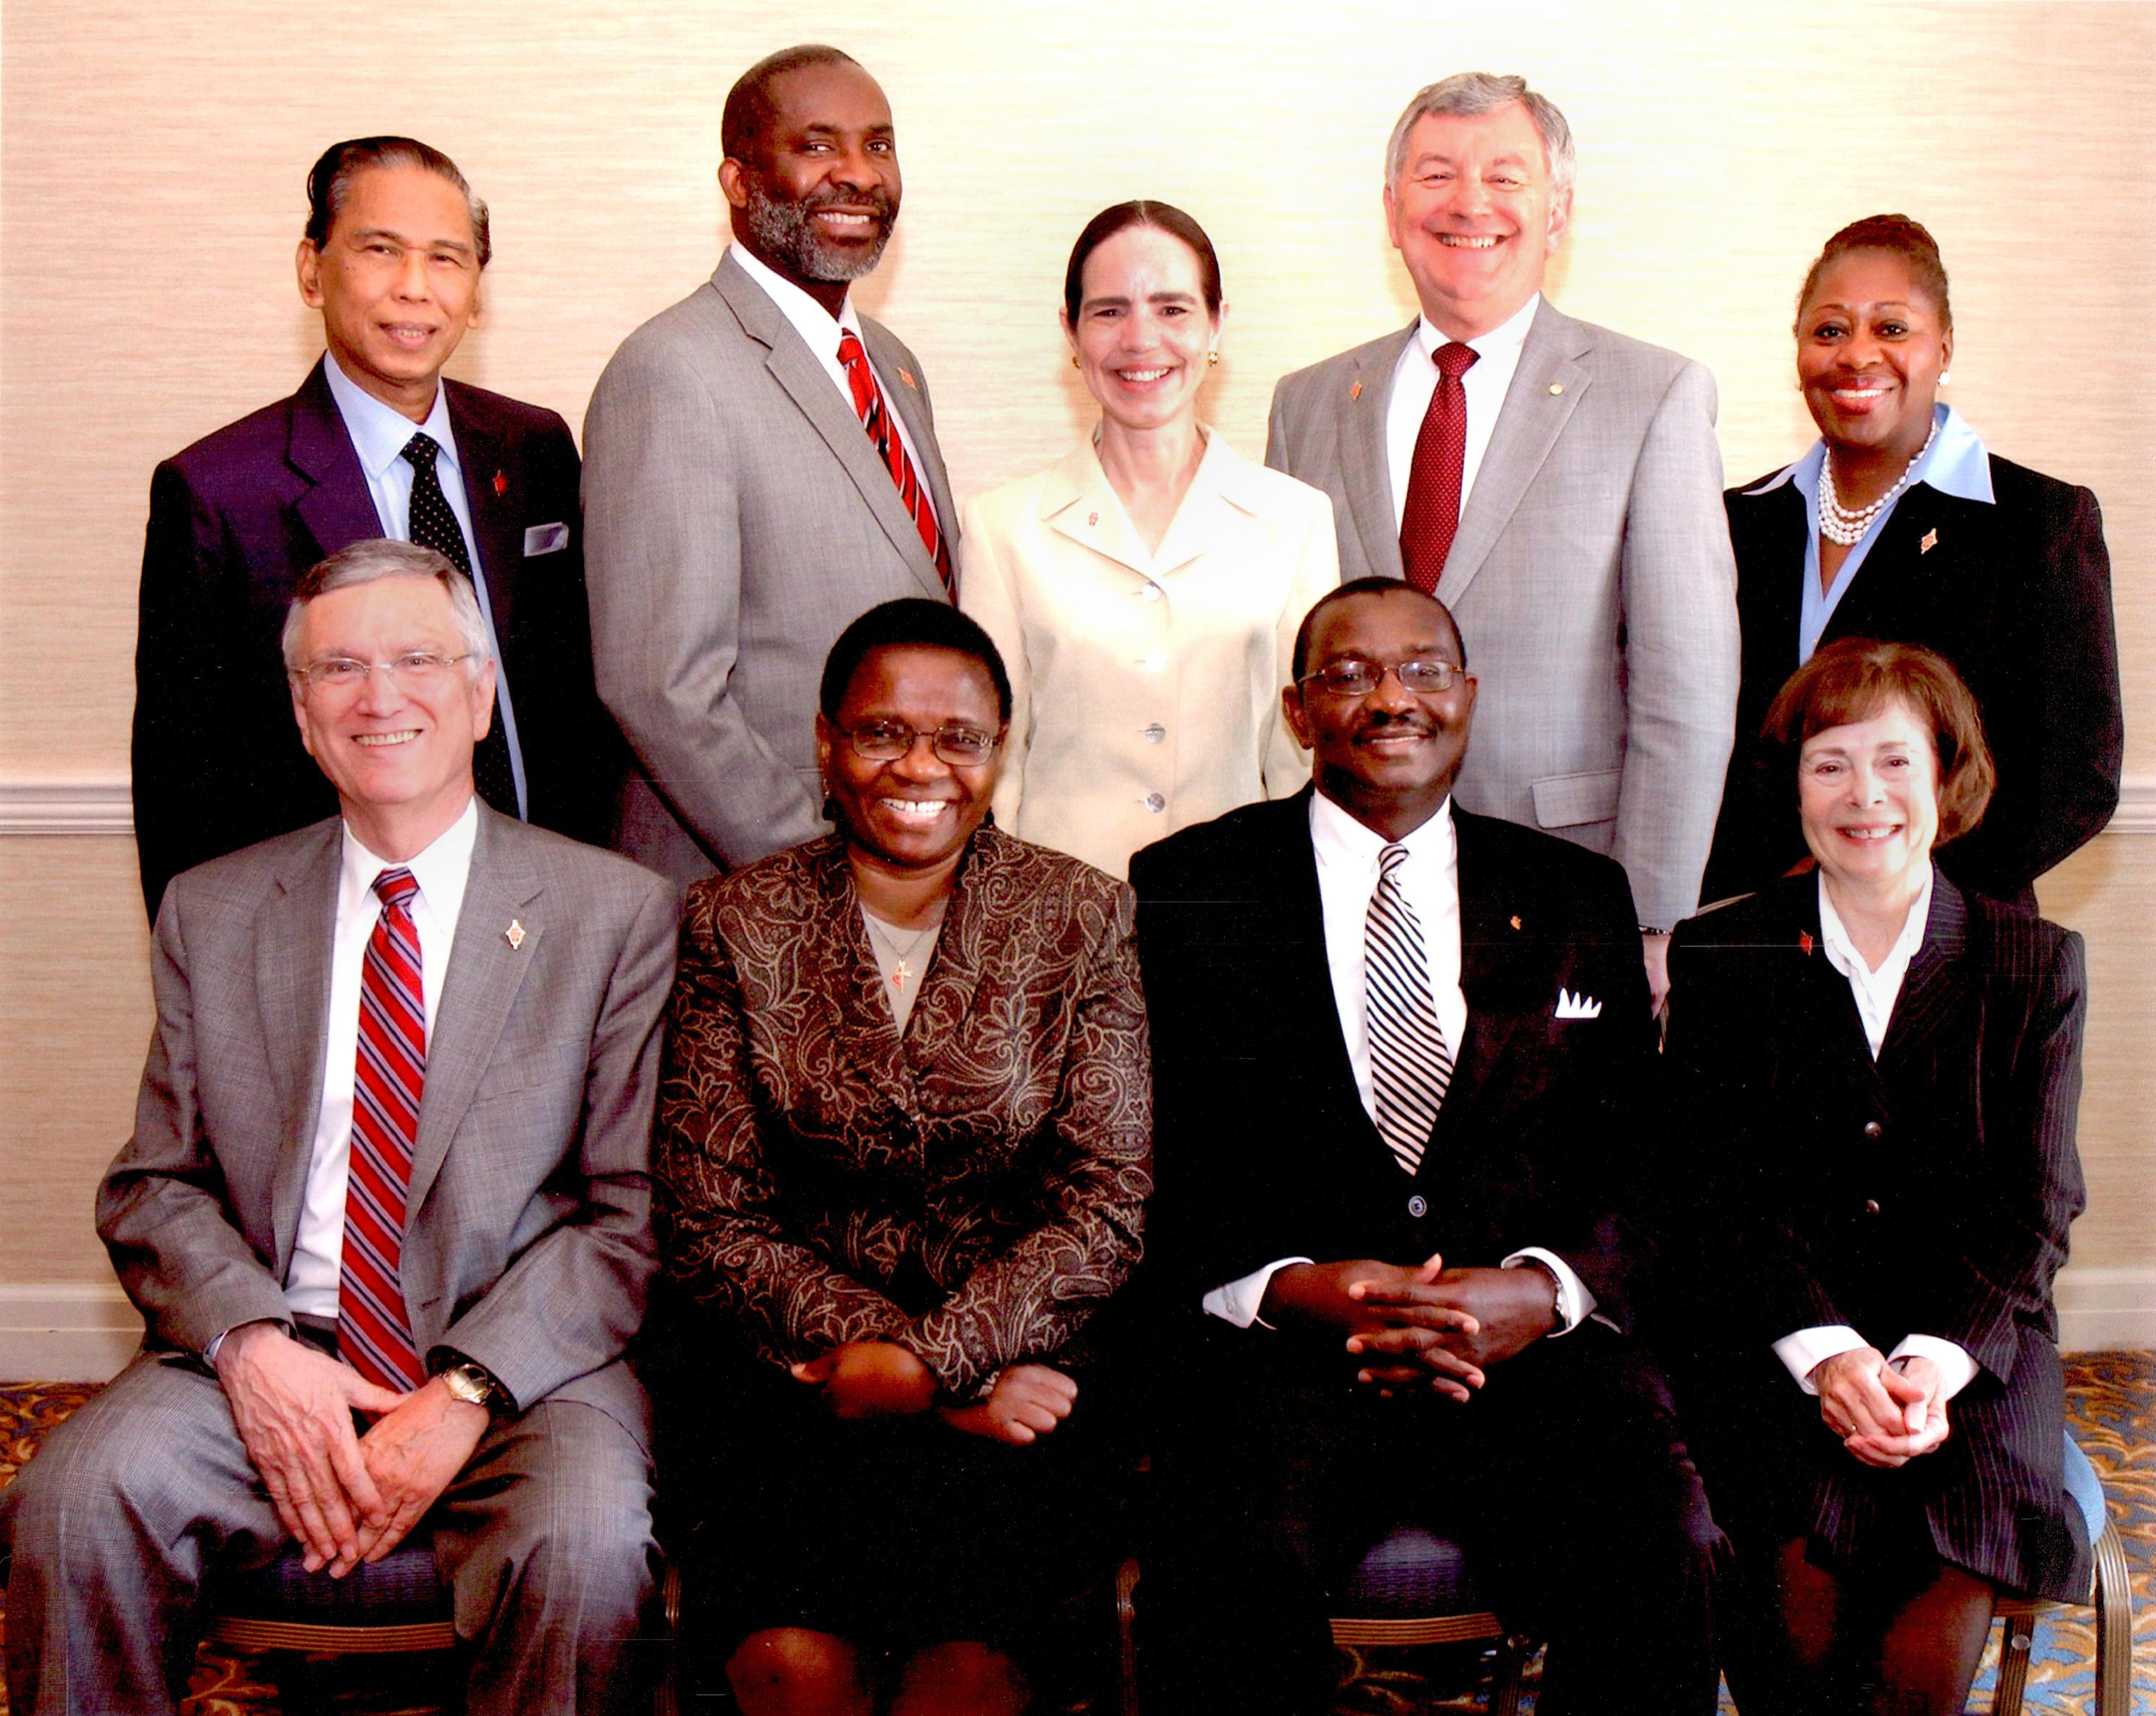 The United Methodist Church 2012-2016 Judicial Council - F. Belton  Joyner Jr., Jeanne Kabamba Kiboko, N. Oswald Tweh Sr., Katherine Austin Mahle, Ruben T. Reyes, Dennis Blackwell, Beth Capen, William B. Lawrence, and Angela Brown.